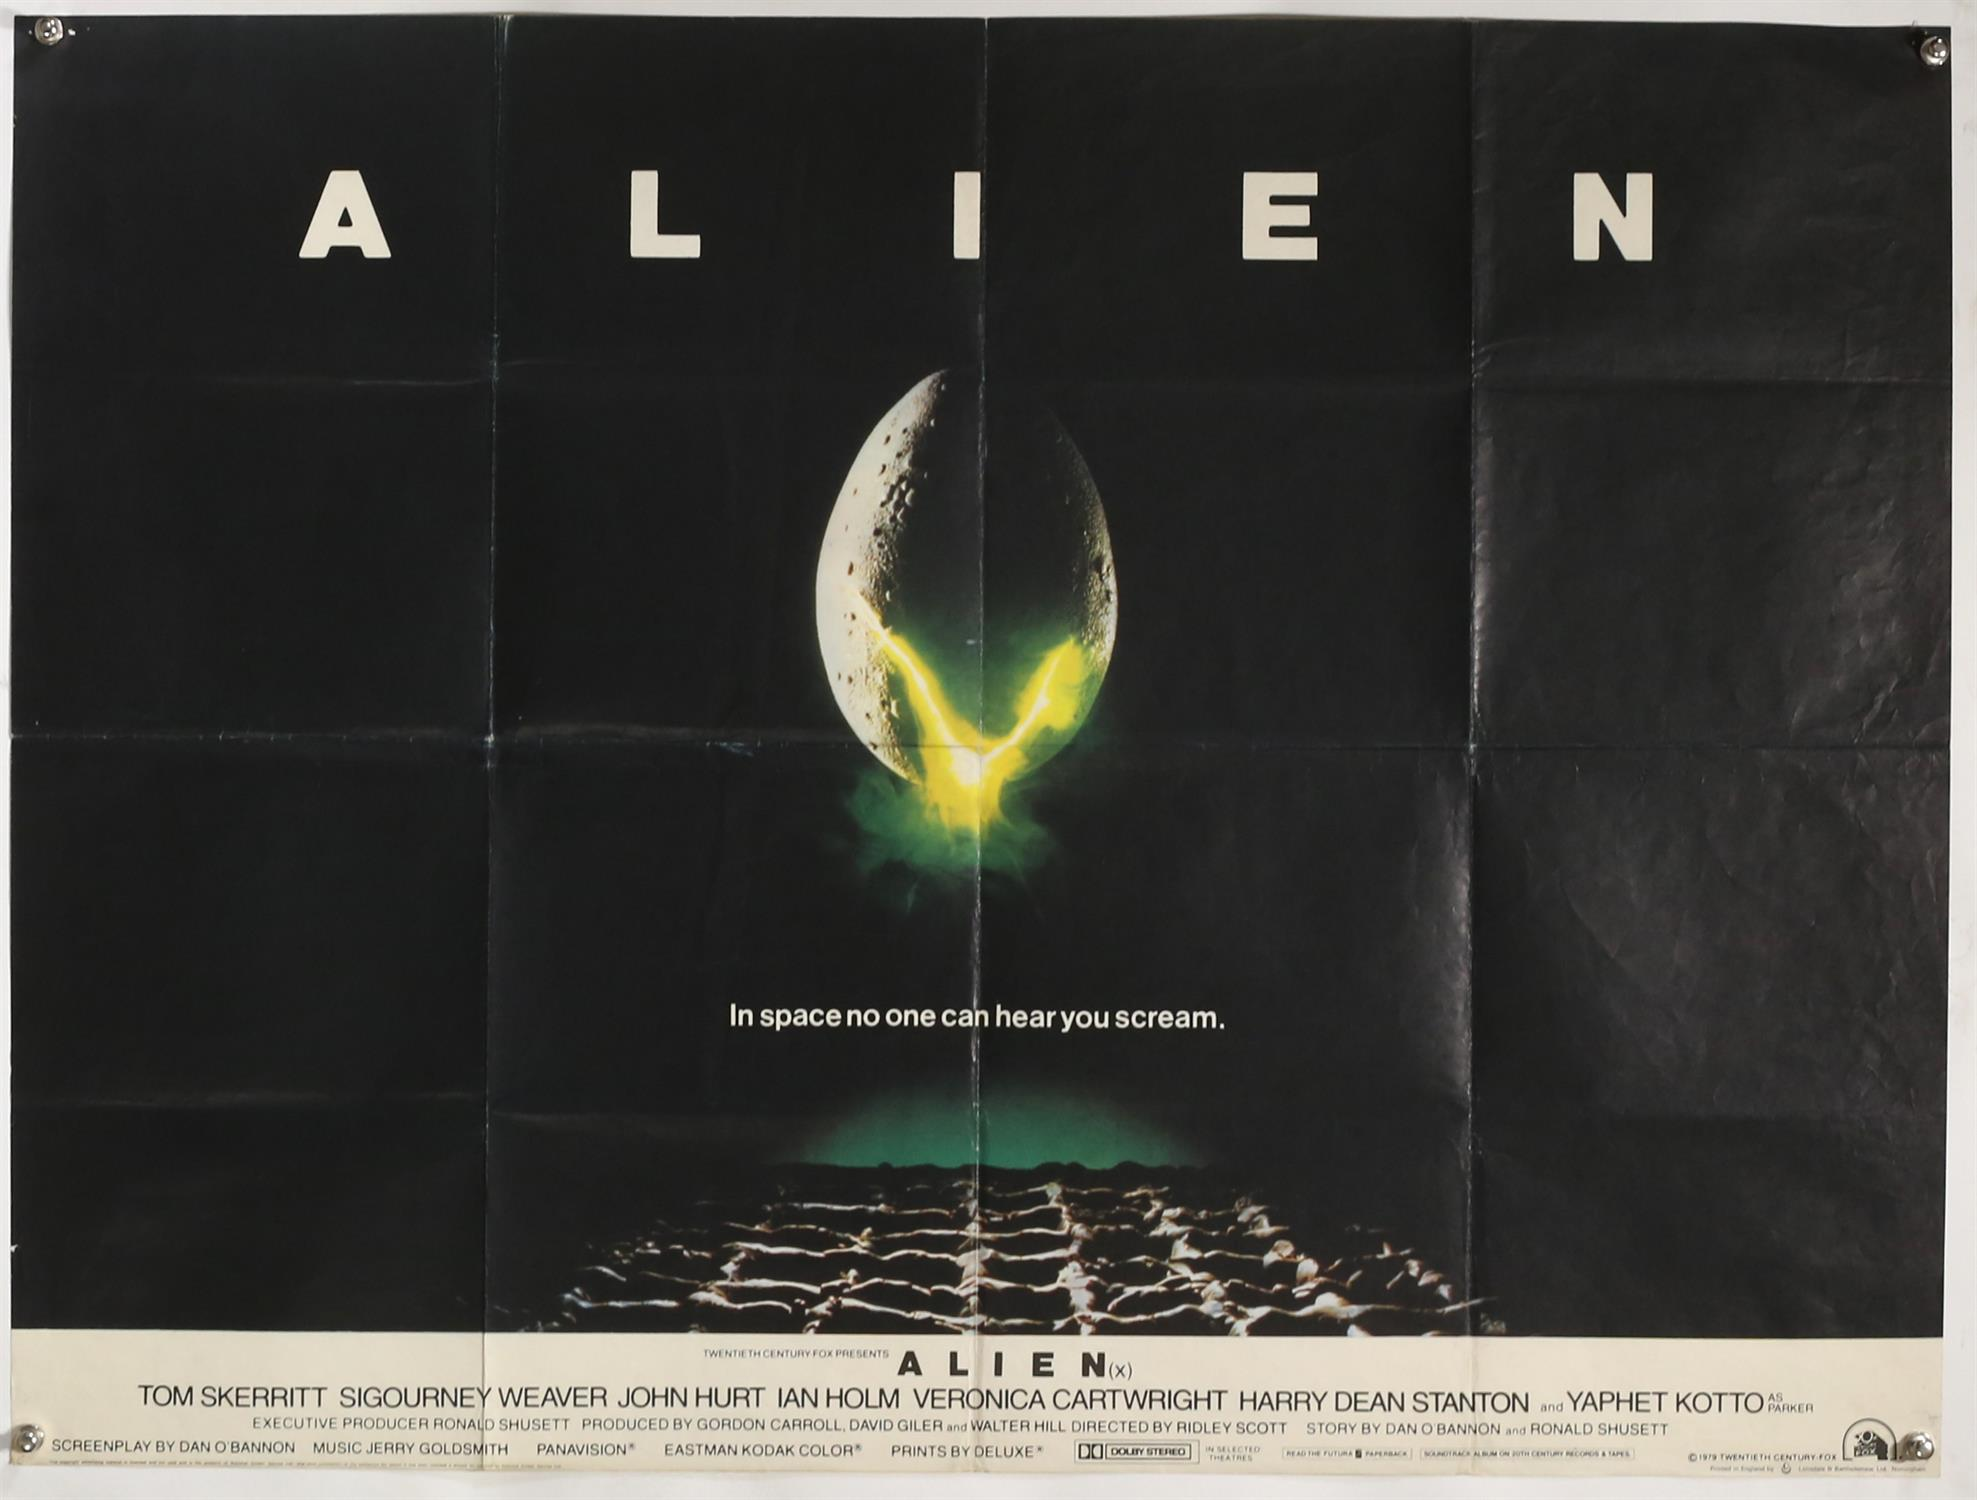 Alien (1979) British Quad film poster, Sci-Fi directed by Ridley Scott, folded, 30 x 40 inches.